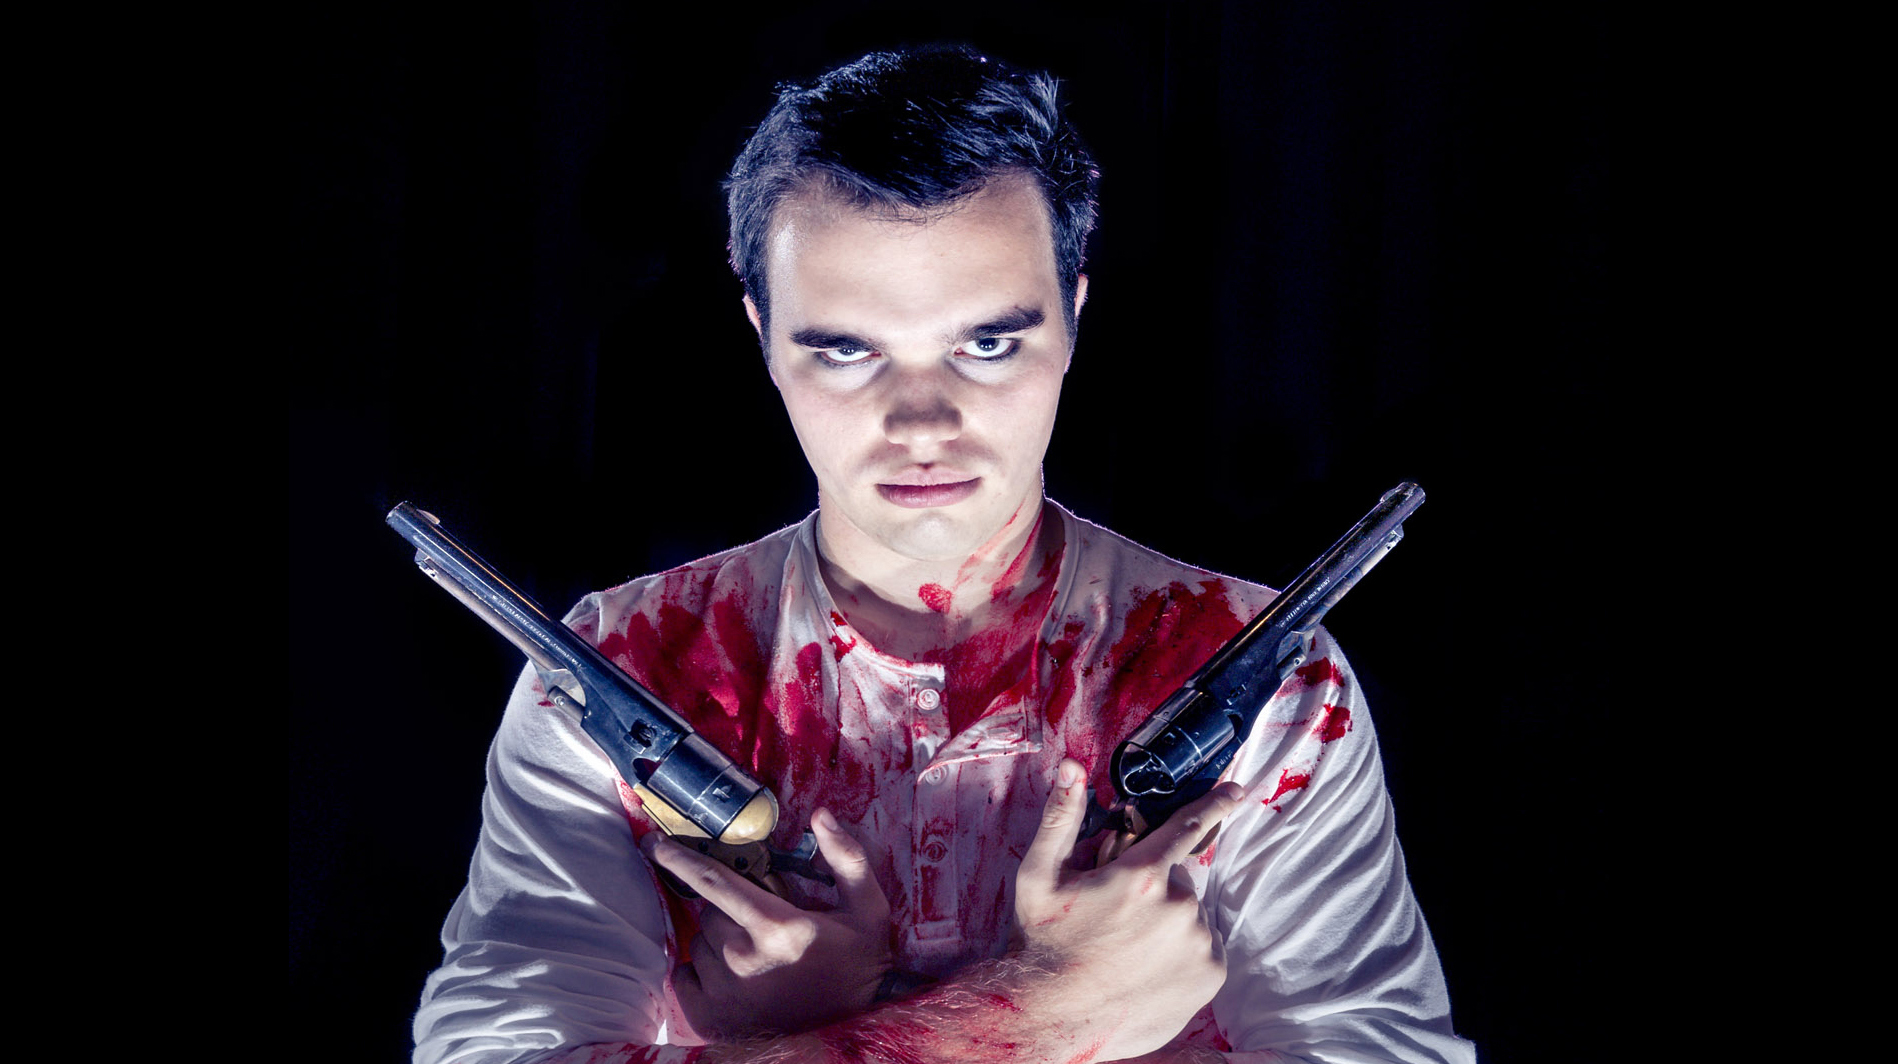 Man covered in blood, crossed arms, holding two revolvers.